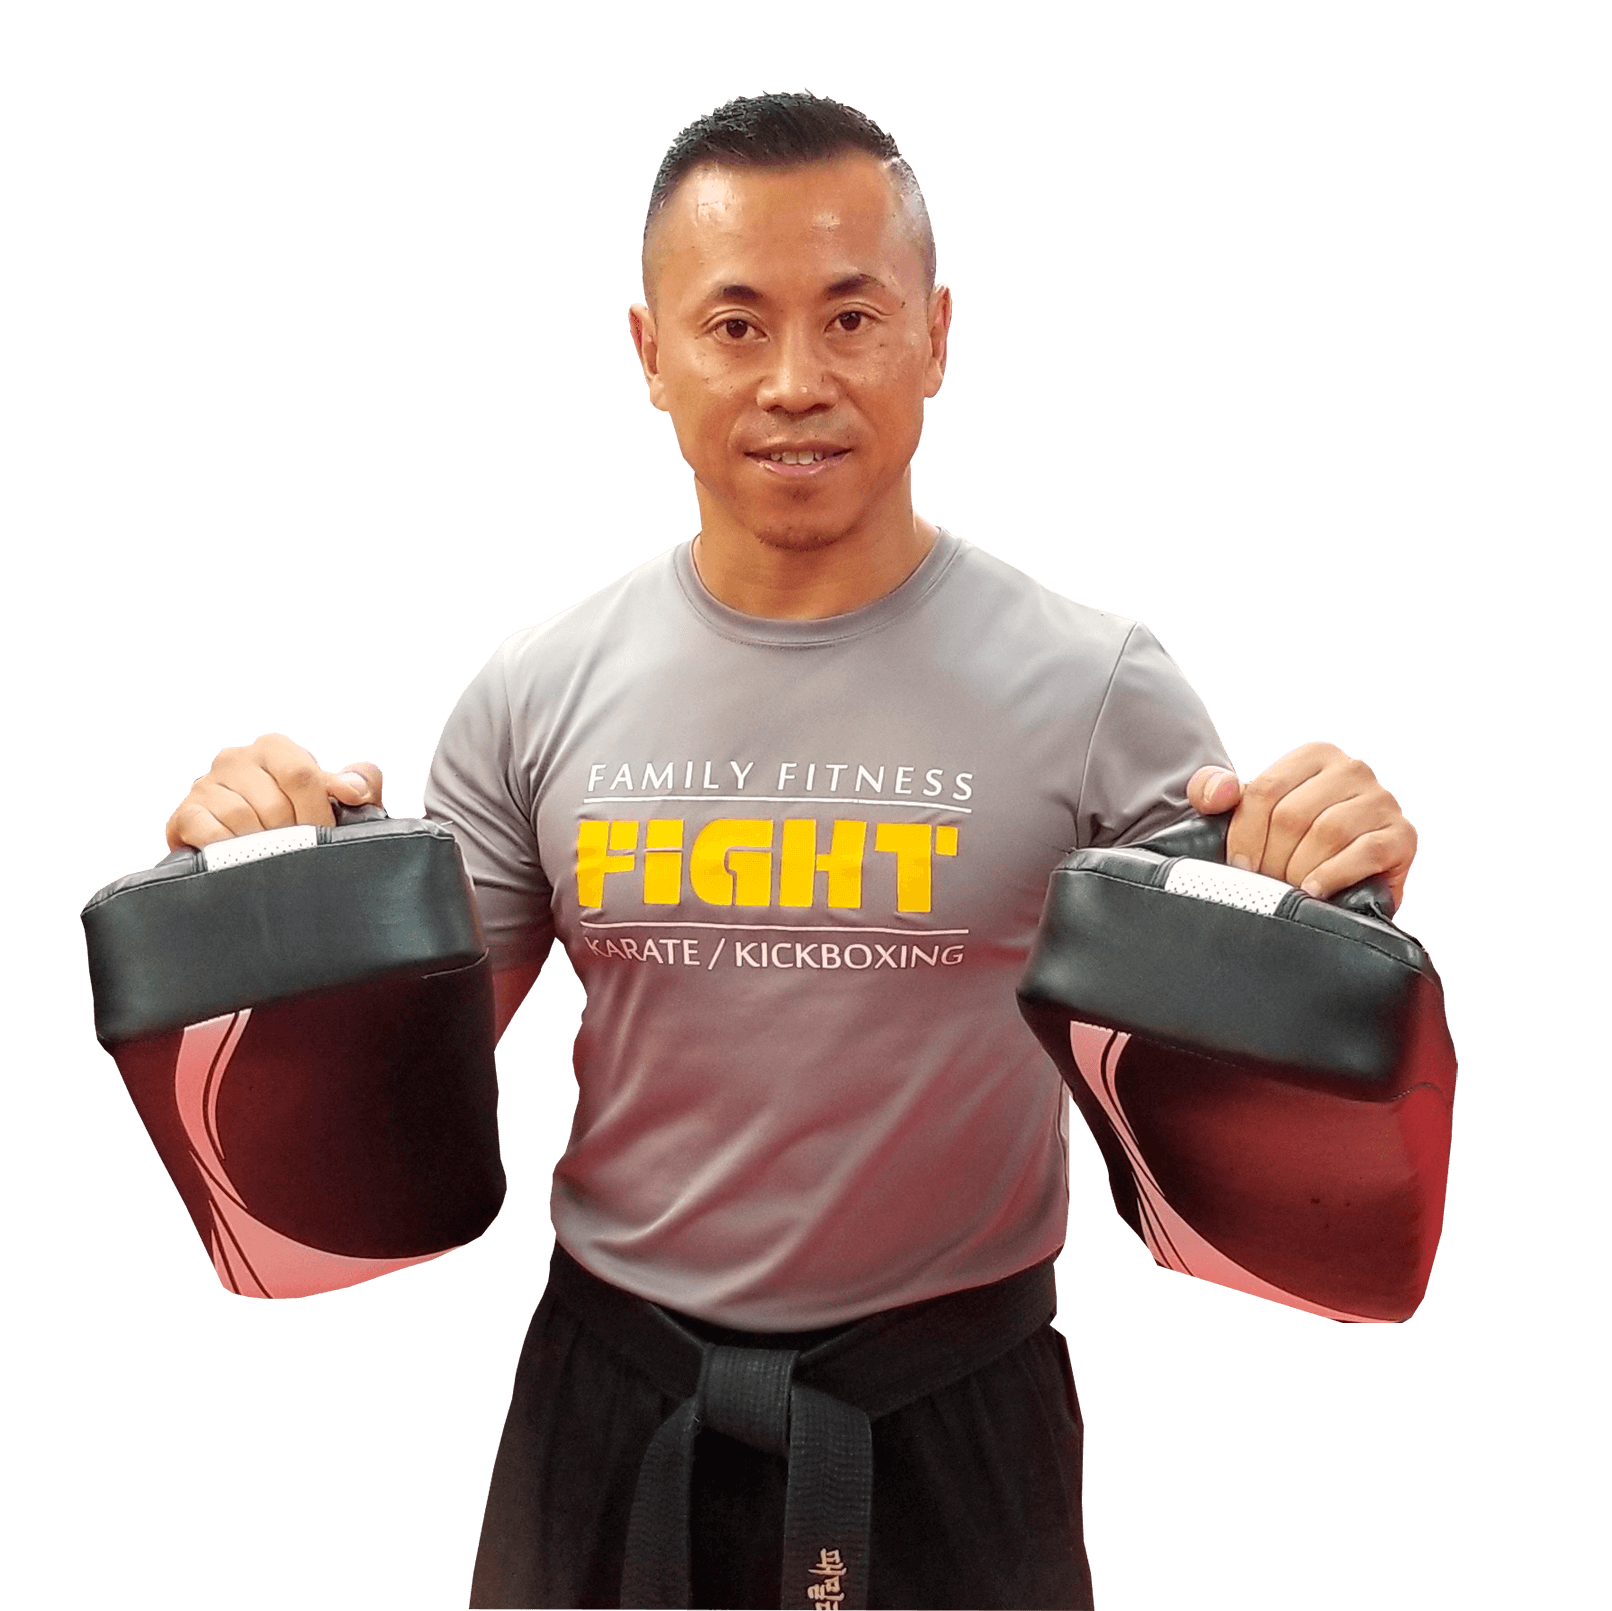 Family Fitness Karate and Kickboxing Owner